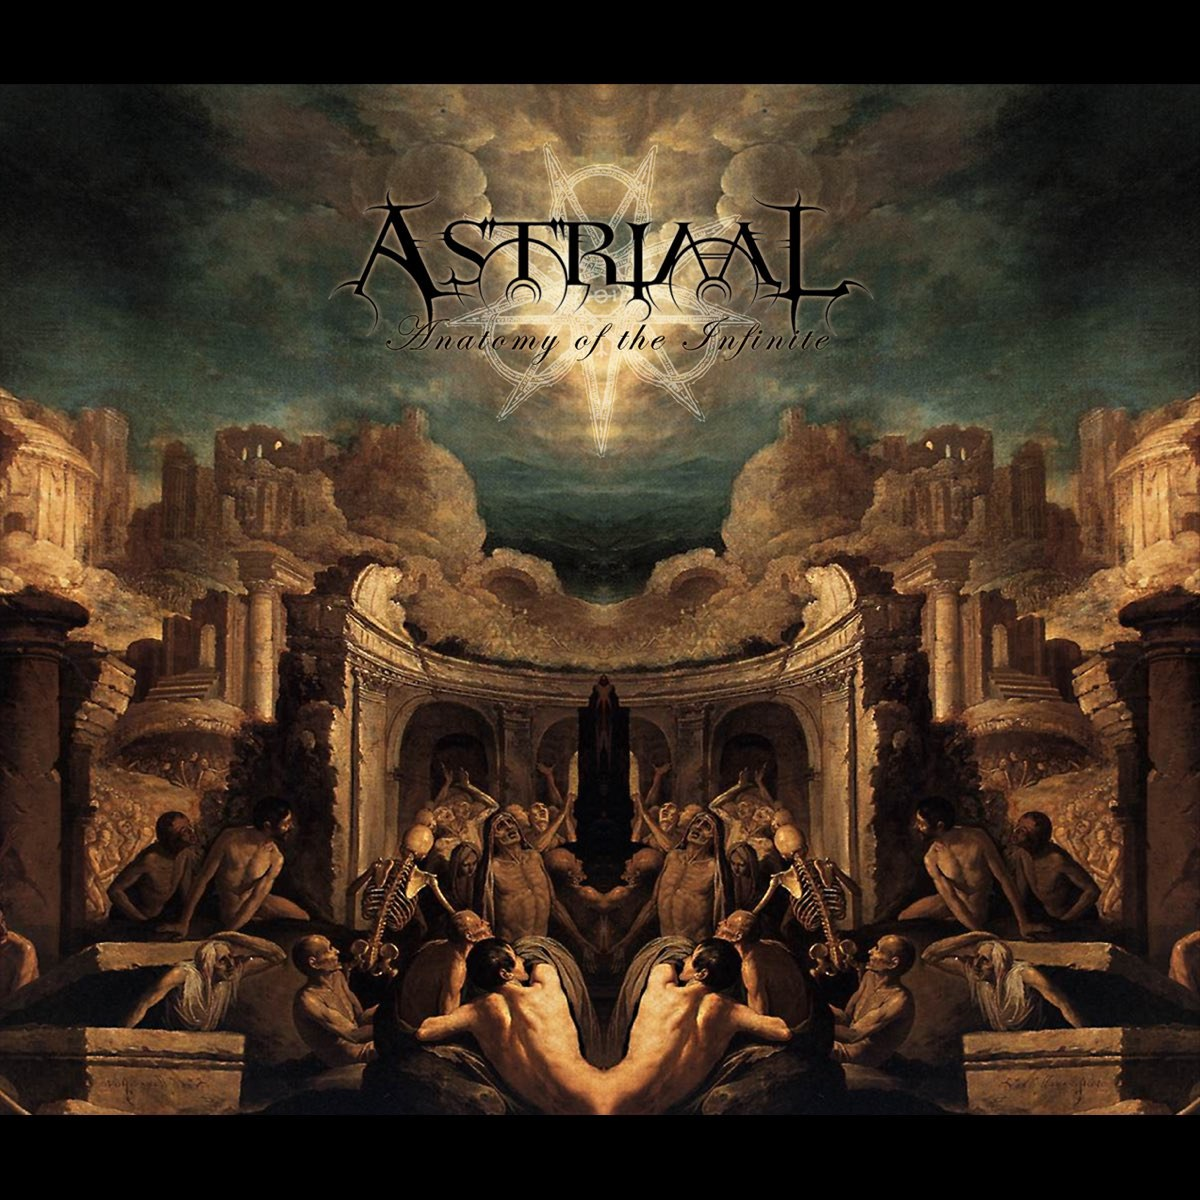 Review for Astriaal - Anatomy of the Infinite